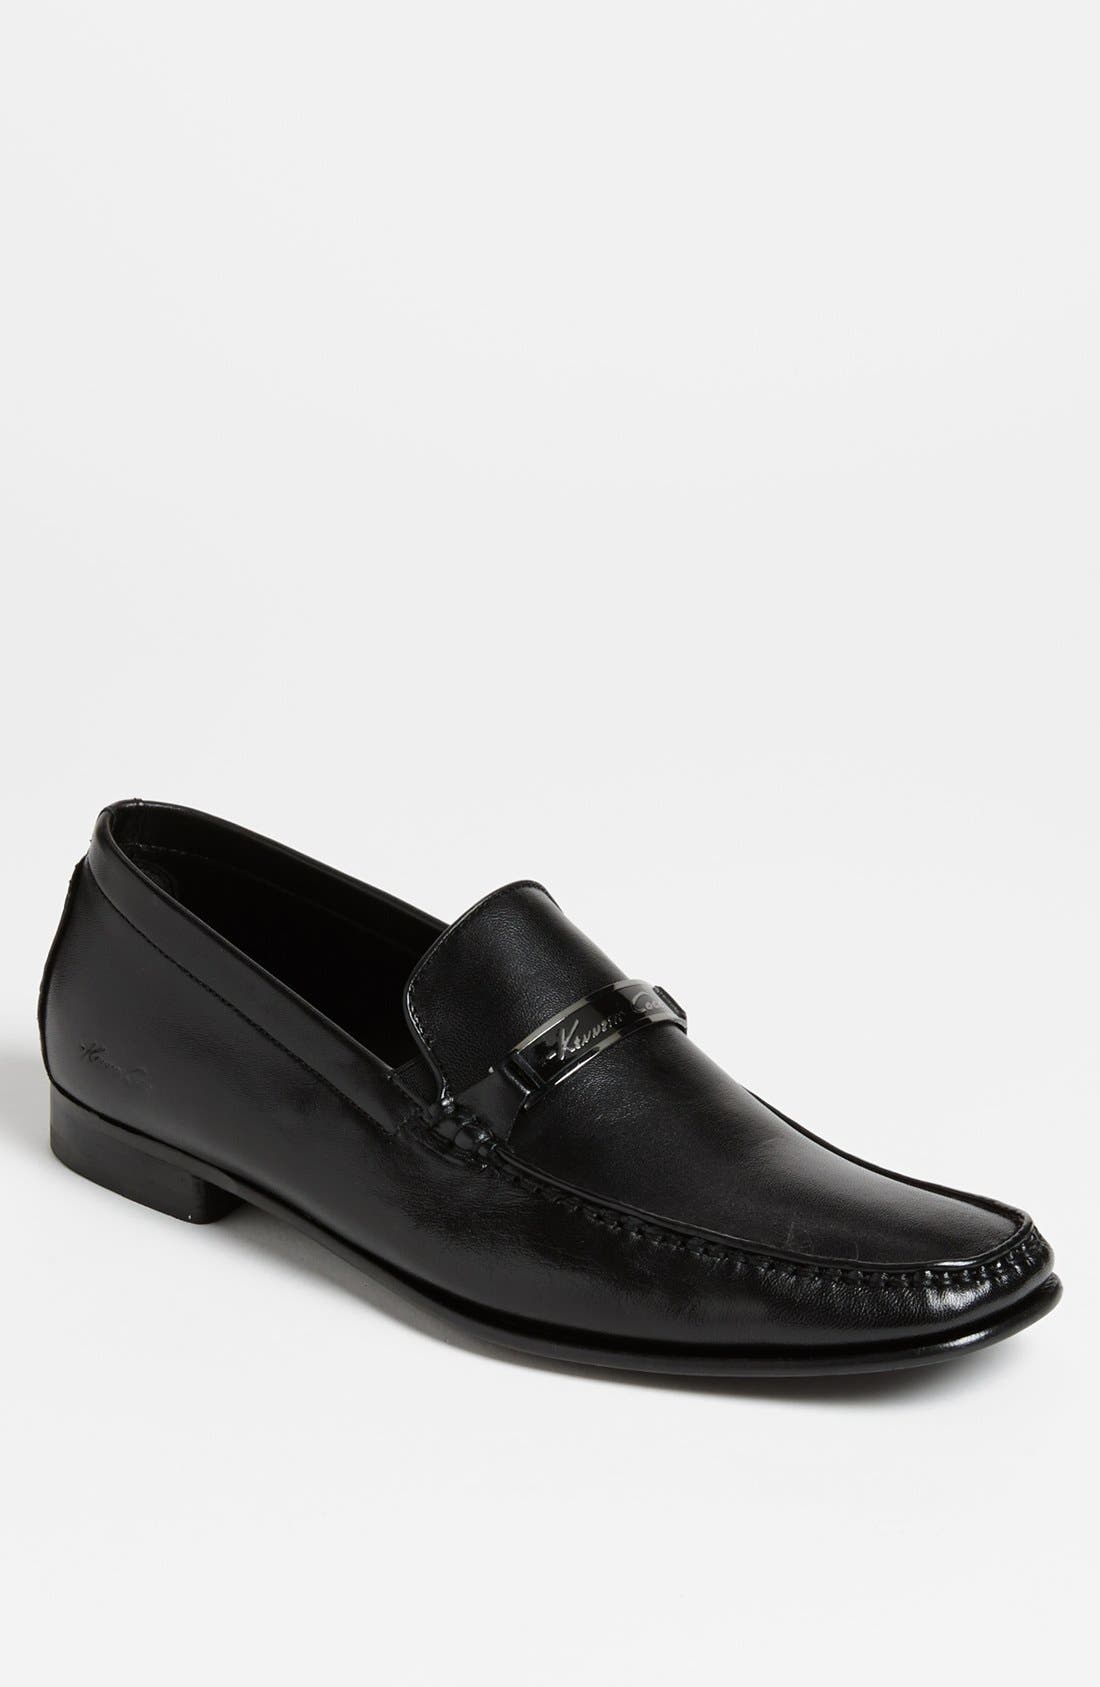 Main Image - Kenneth Cole New York 'Bologna' Loafer